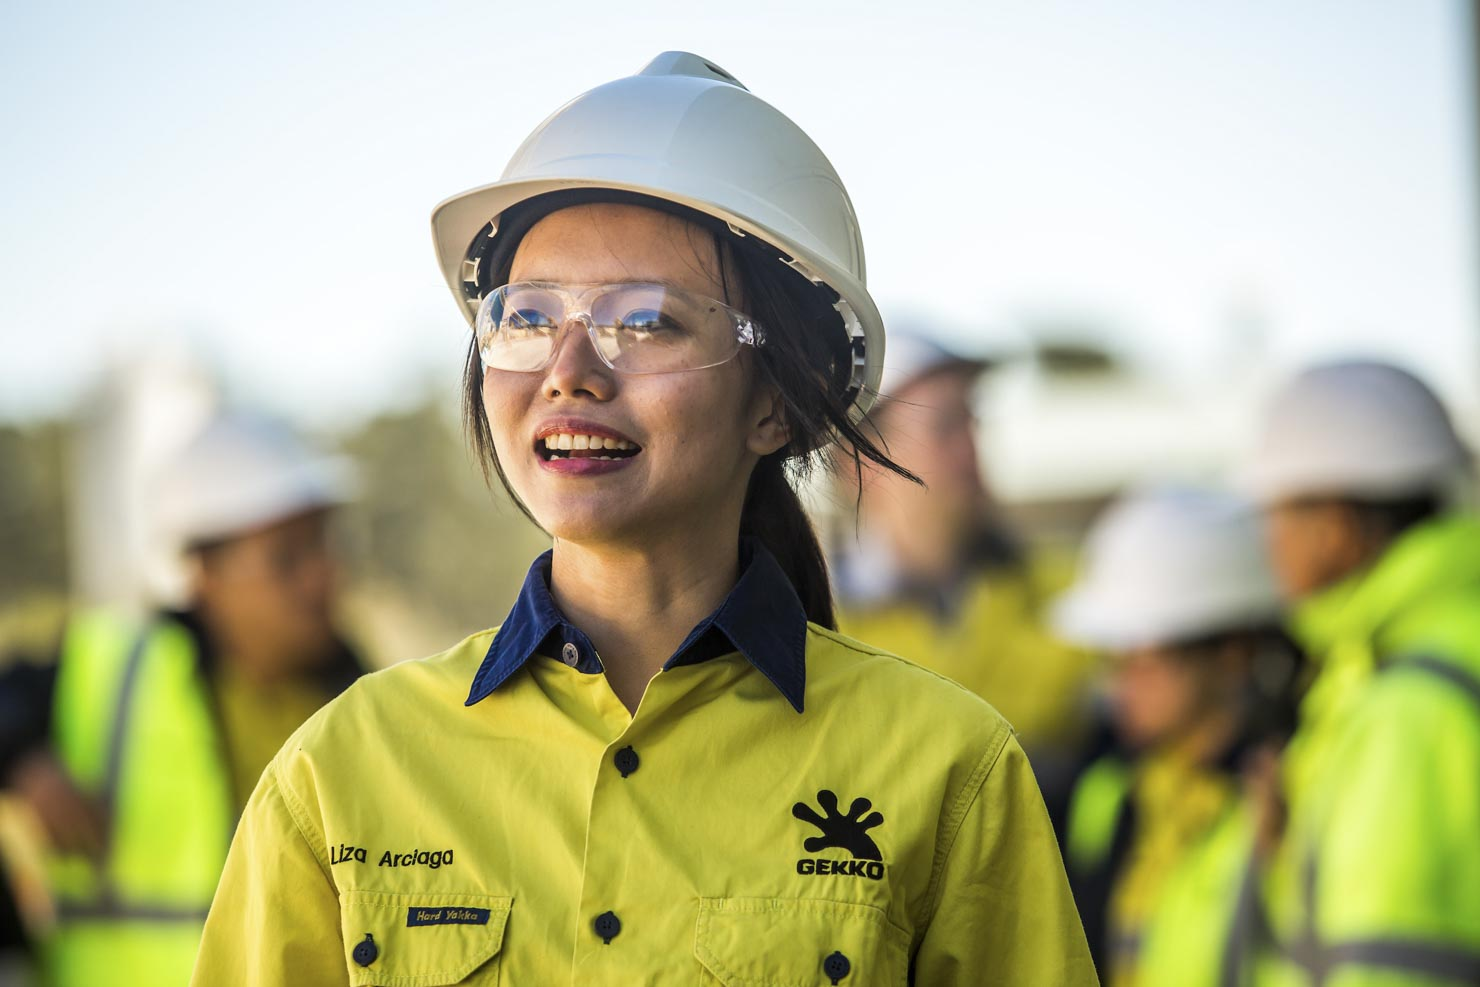 Female Asian industry worker at Gekko Systems